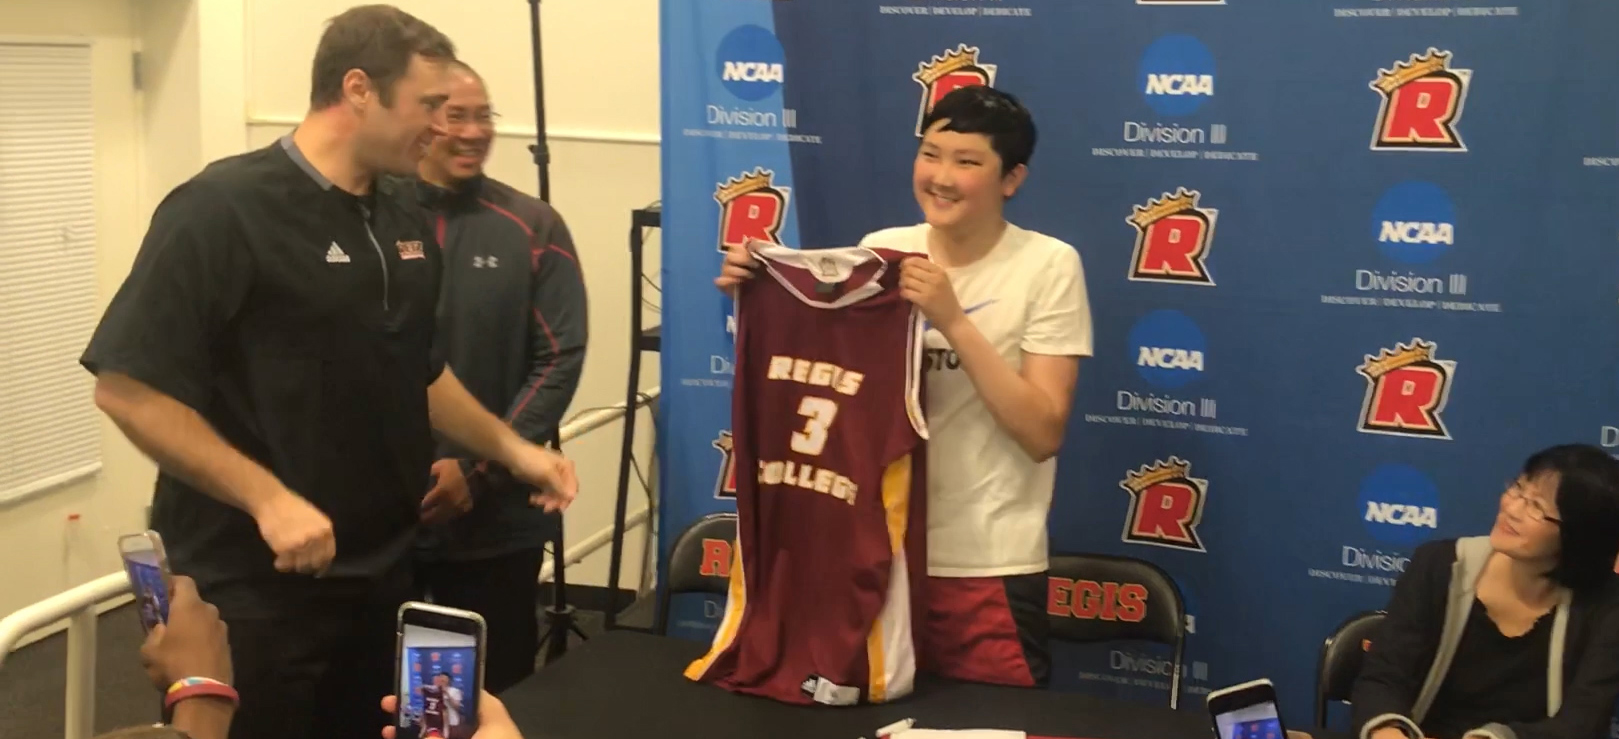 Jarod Woo Joins Pride Men's Basketball Through Team IMPACT